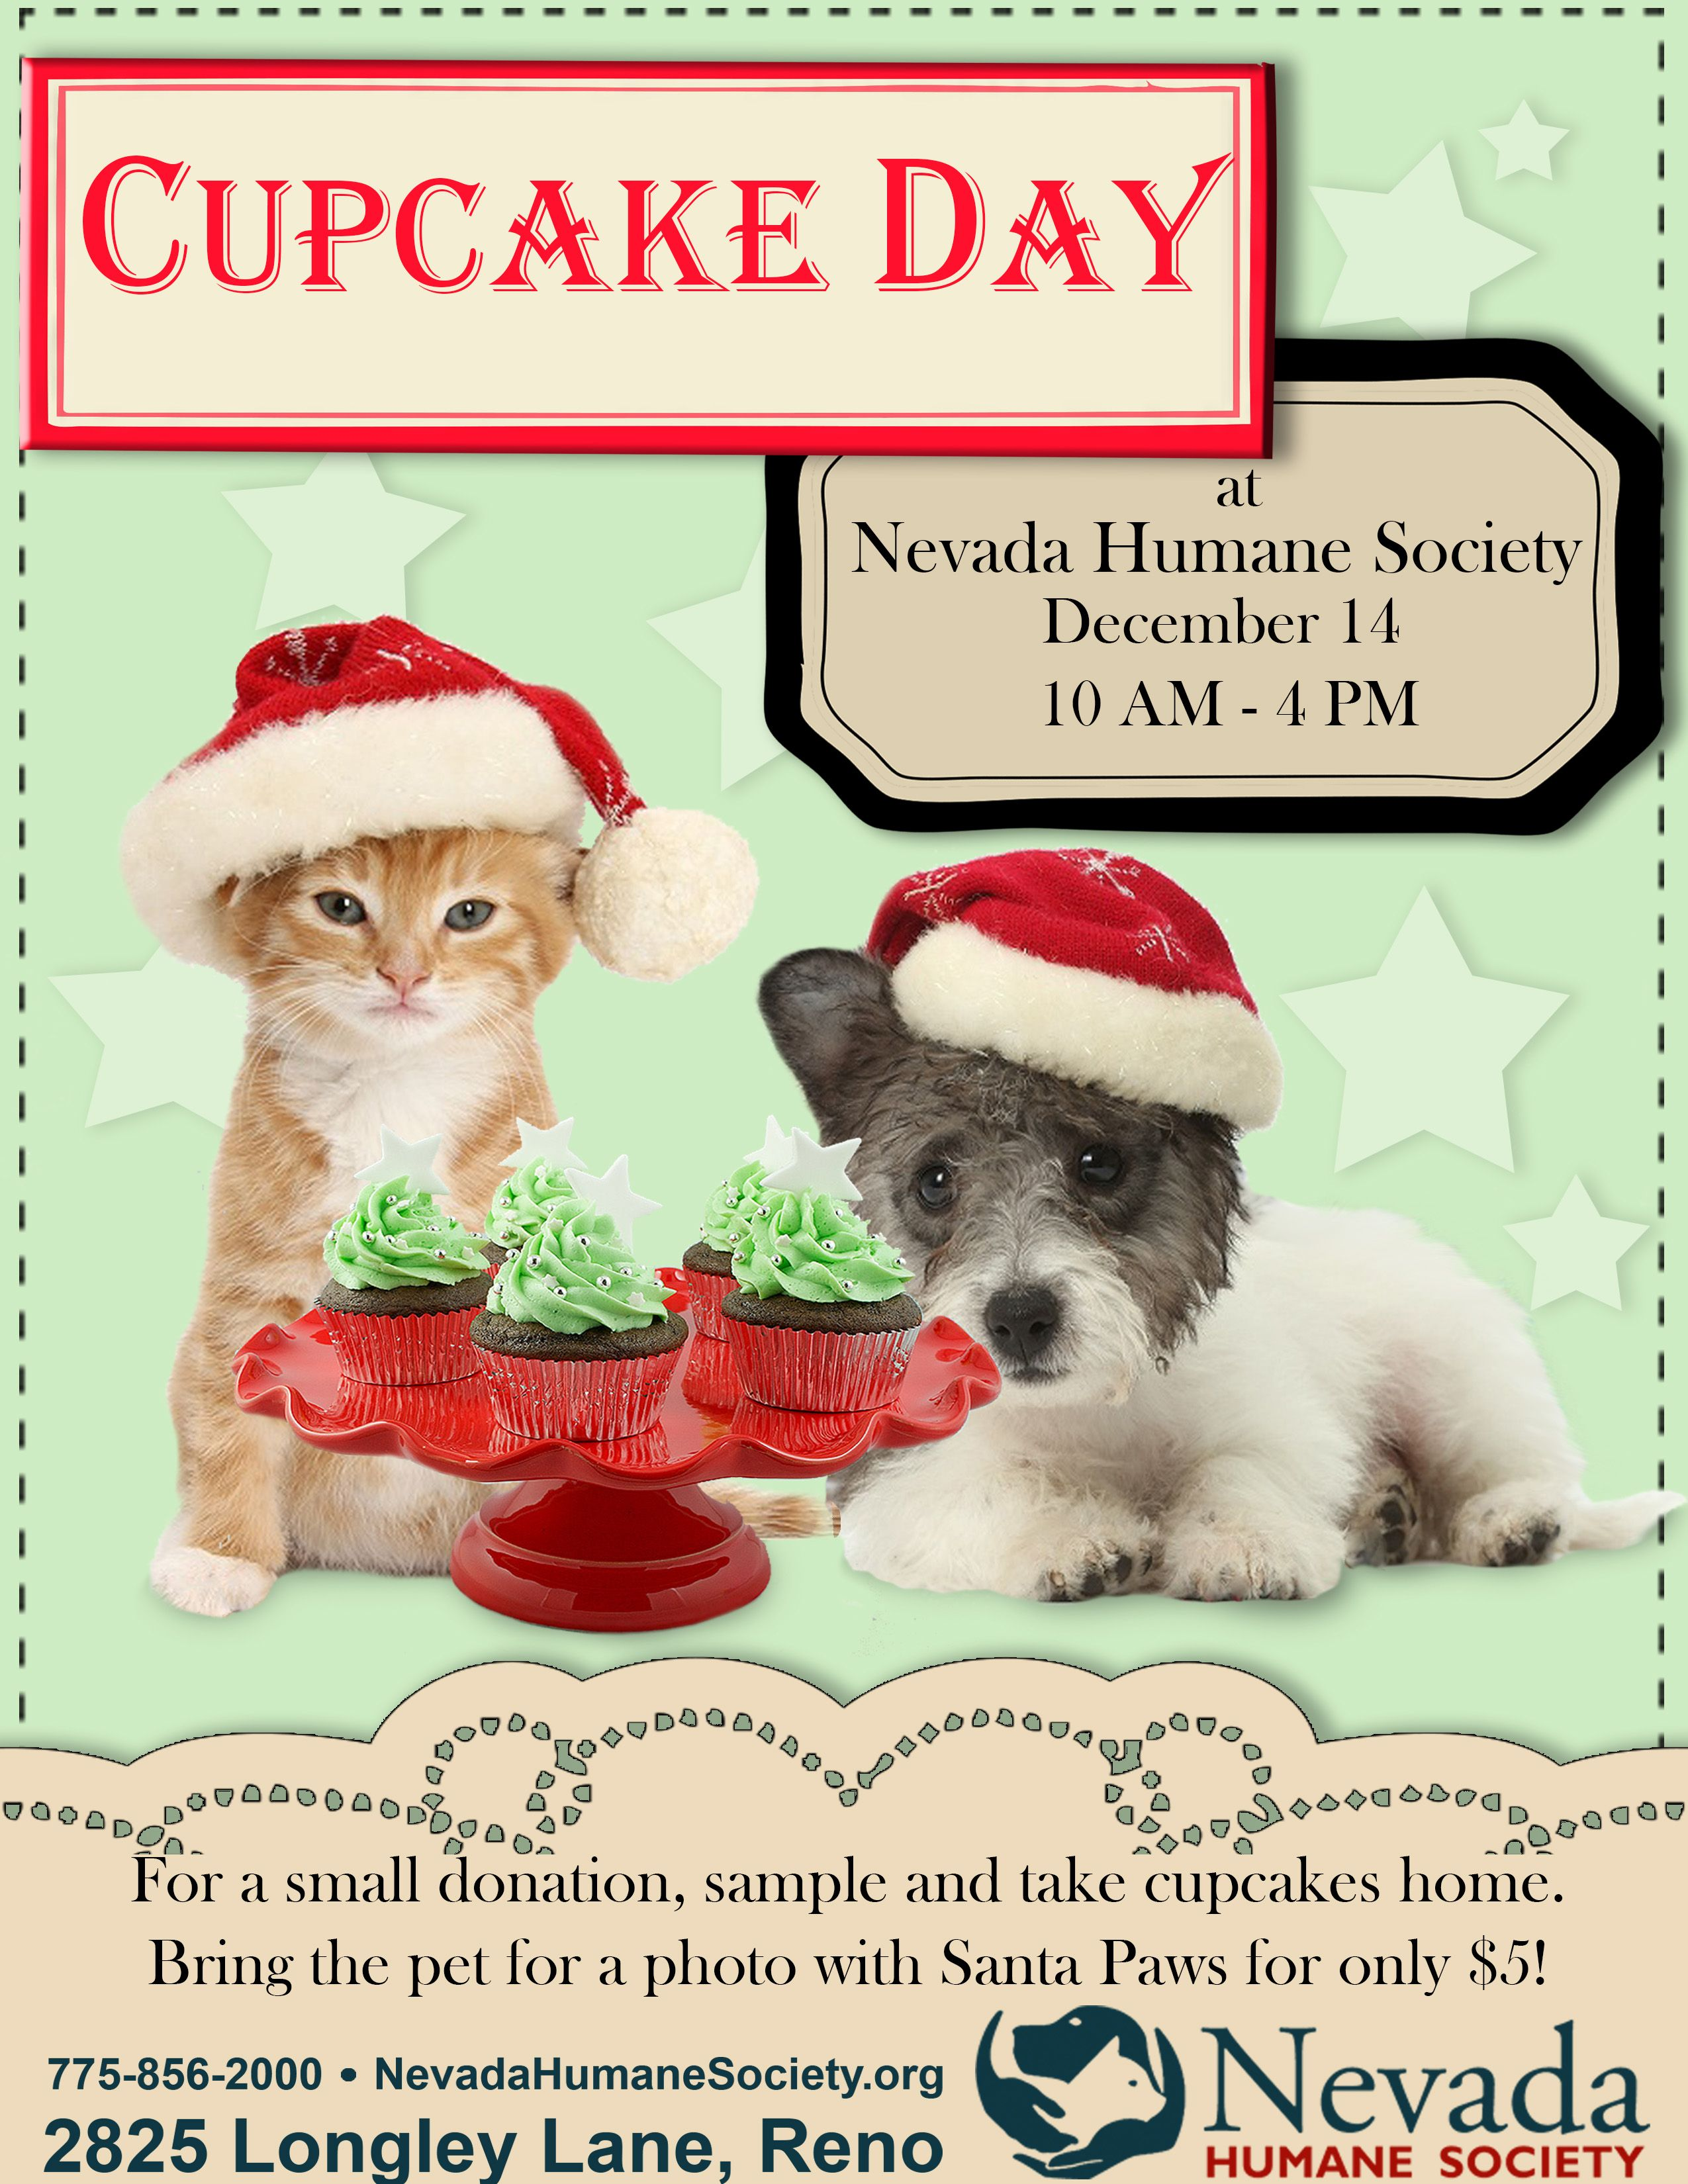 Our Annual Cupcake Day And Pet Photos With Santa Paws Santa Paws Humane Society Cupcake Day